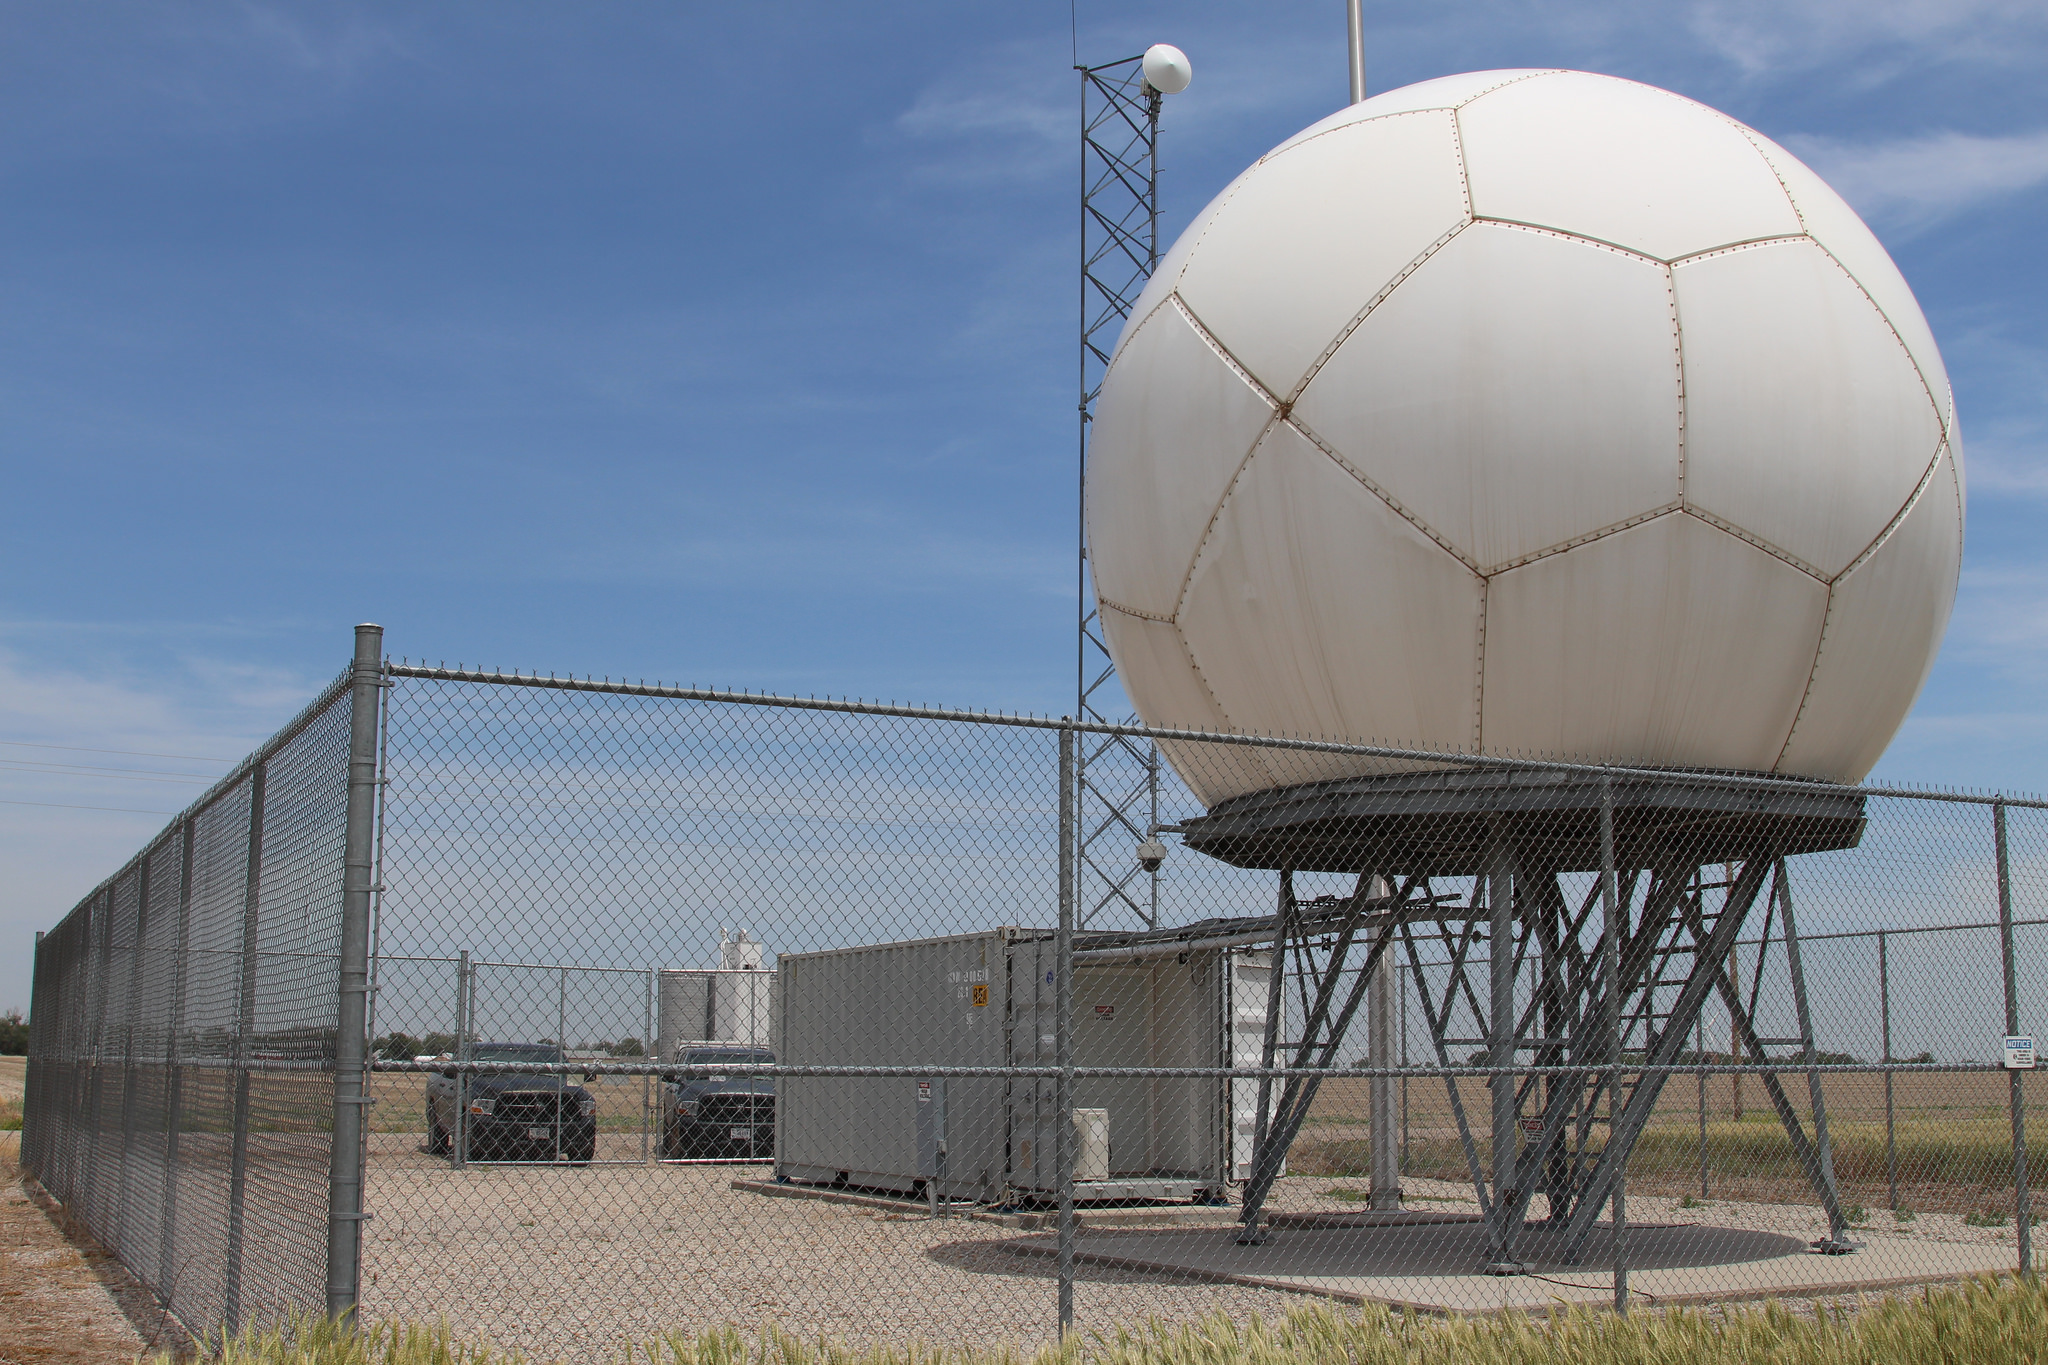 One of three X-band scanning precipitation radars at ARM's Southern Great plains site funded through the American Recovery and Reinvestment Act. They provide measurements that identify precipitation type, estimate rainfall rates, and estimate the velocity of wind fields.